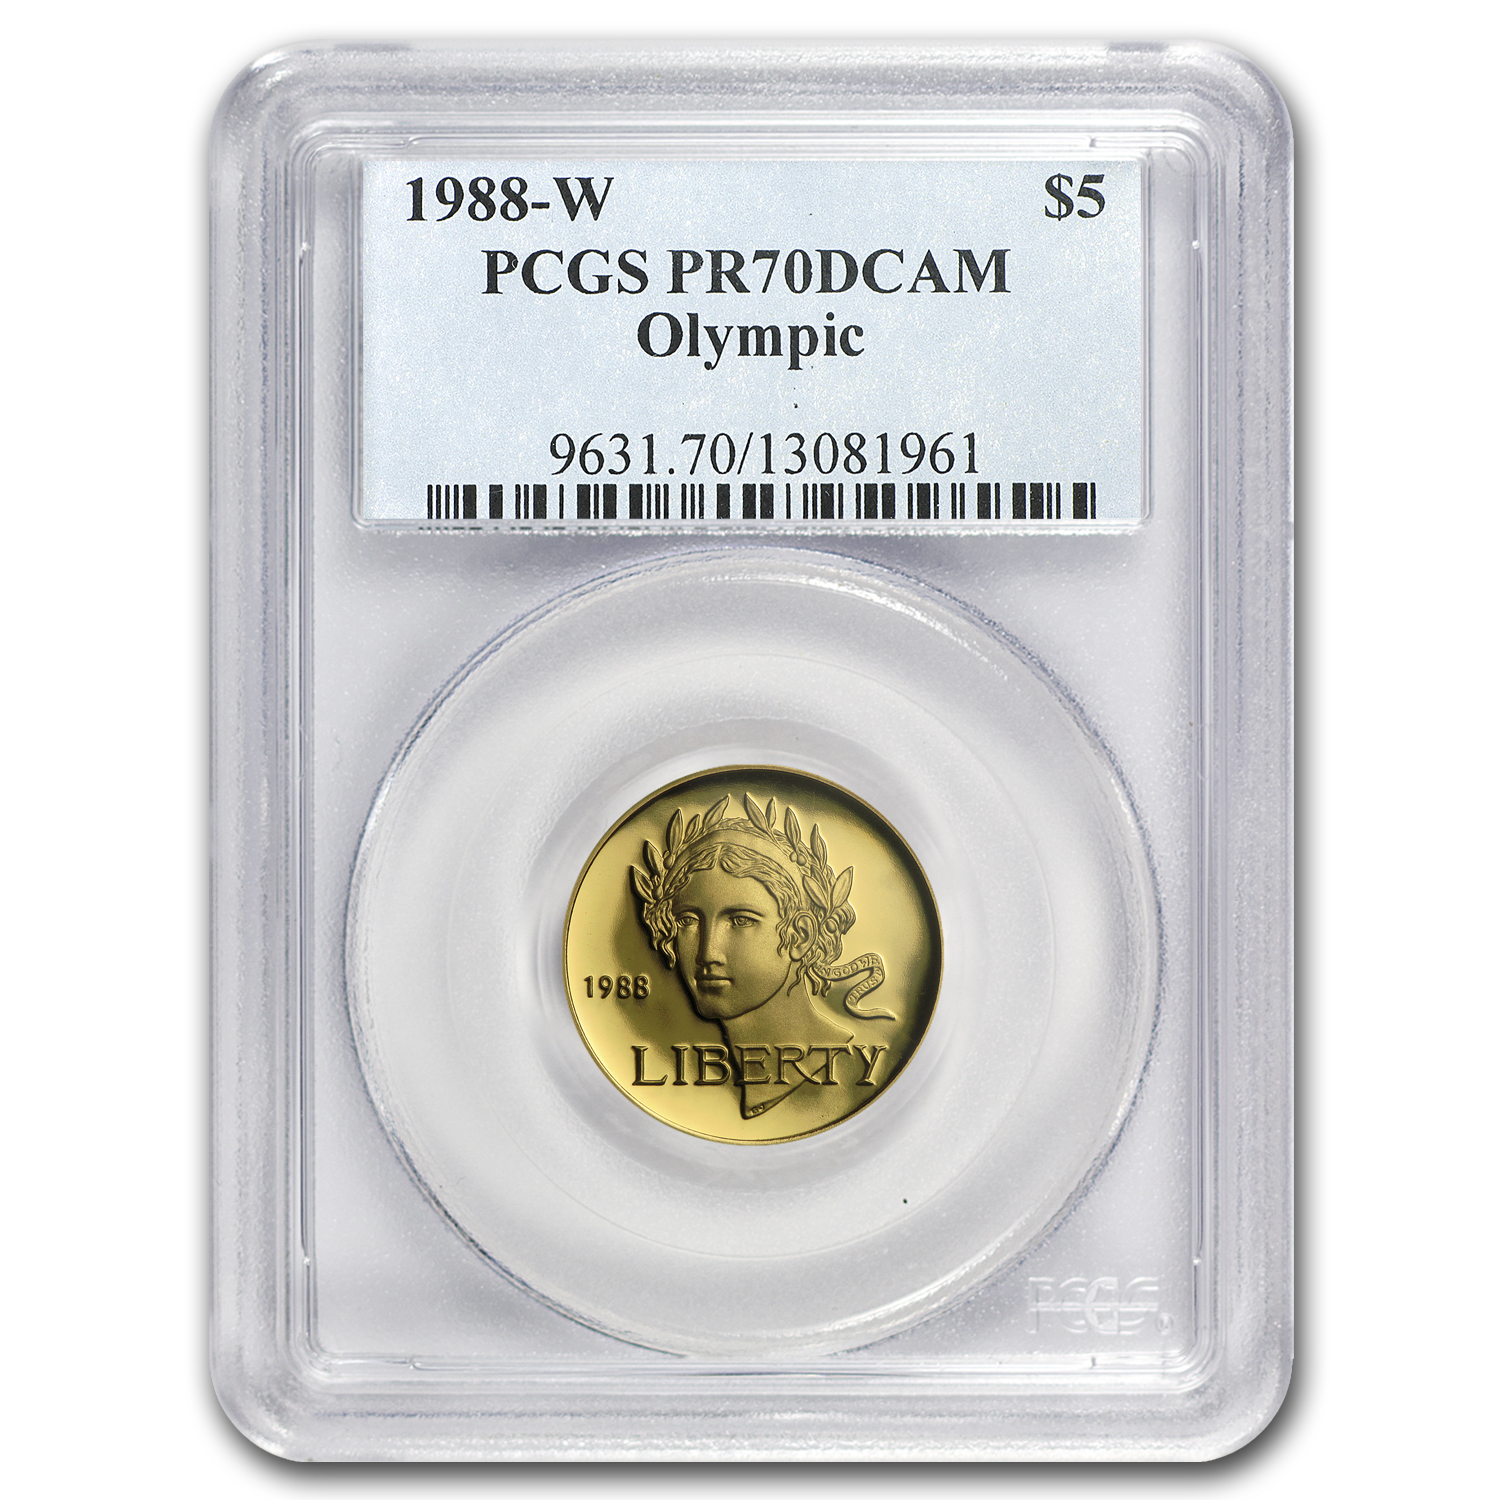 1988-W Gold $5 Commem Olympic PR-70 PCGS